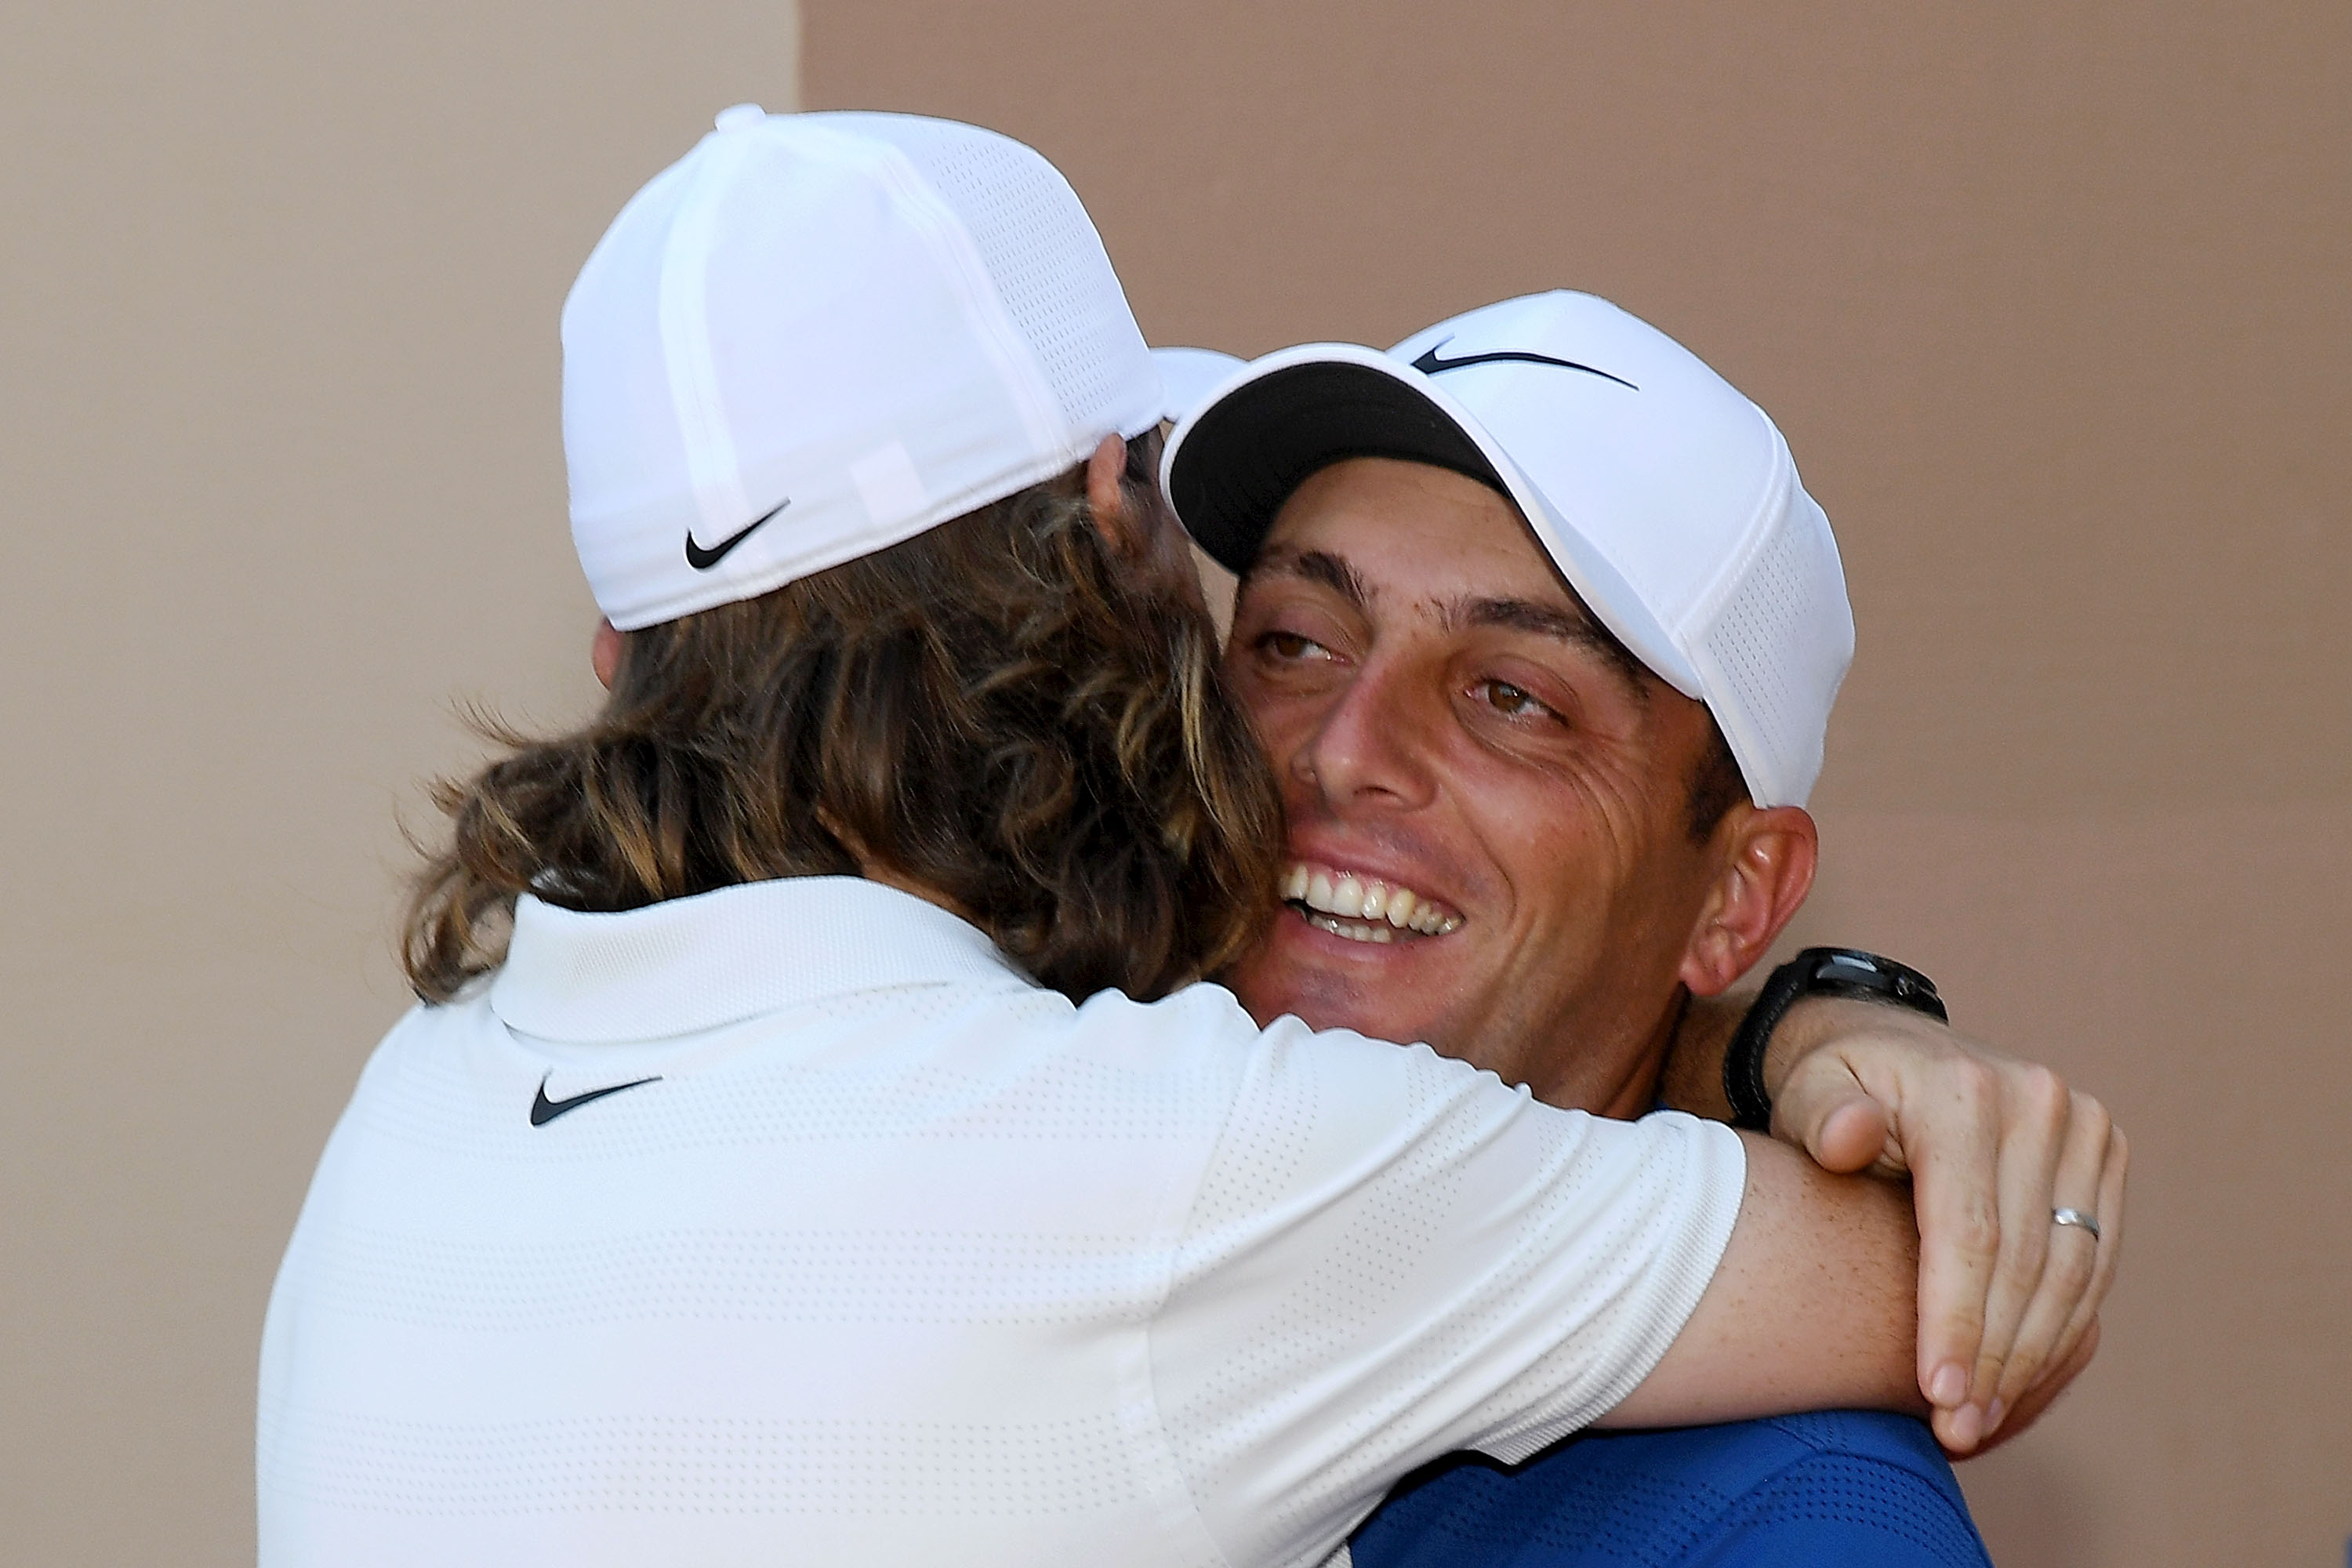 DUBAI, UNITED ARAB EMIRATES - NOVEMBER 18: Tommy Fleetwood of England (L) shakes hands with Francesco Molinari of Italy after Francesco Molinari wins the Race to Dubai during day four of the DP World Tour Championship at Jumeirah Golf Estates on November 18, 2018 in Dubai, United Arab Emirates. (Photo by Ross Kinnaird/Getty Images)